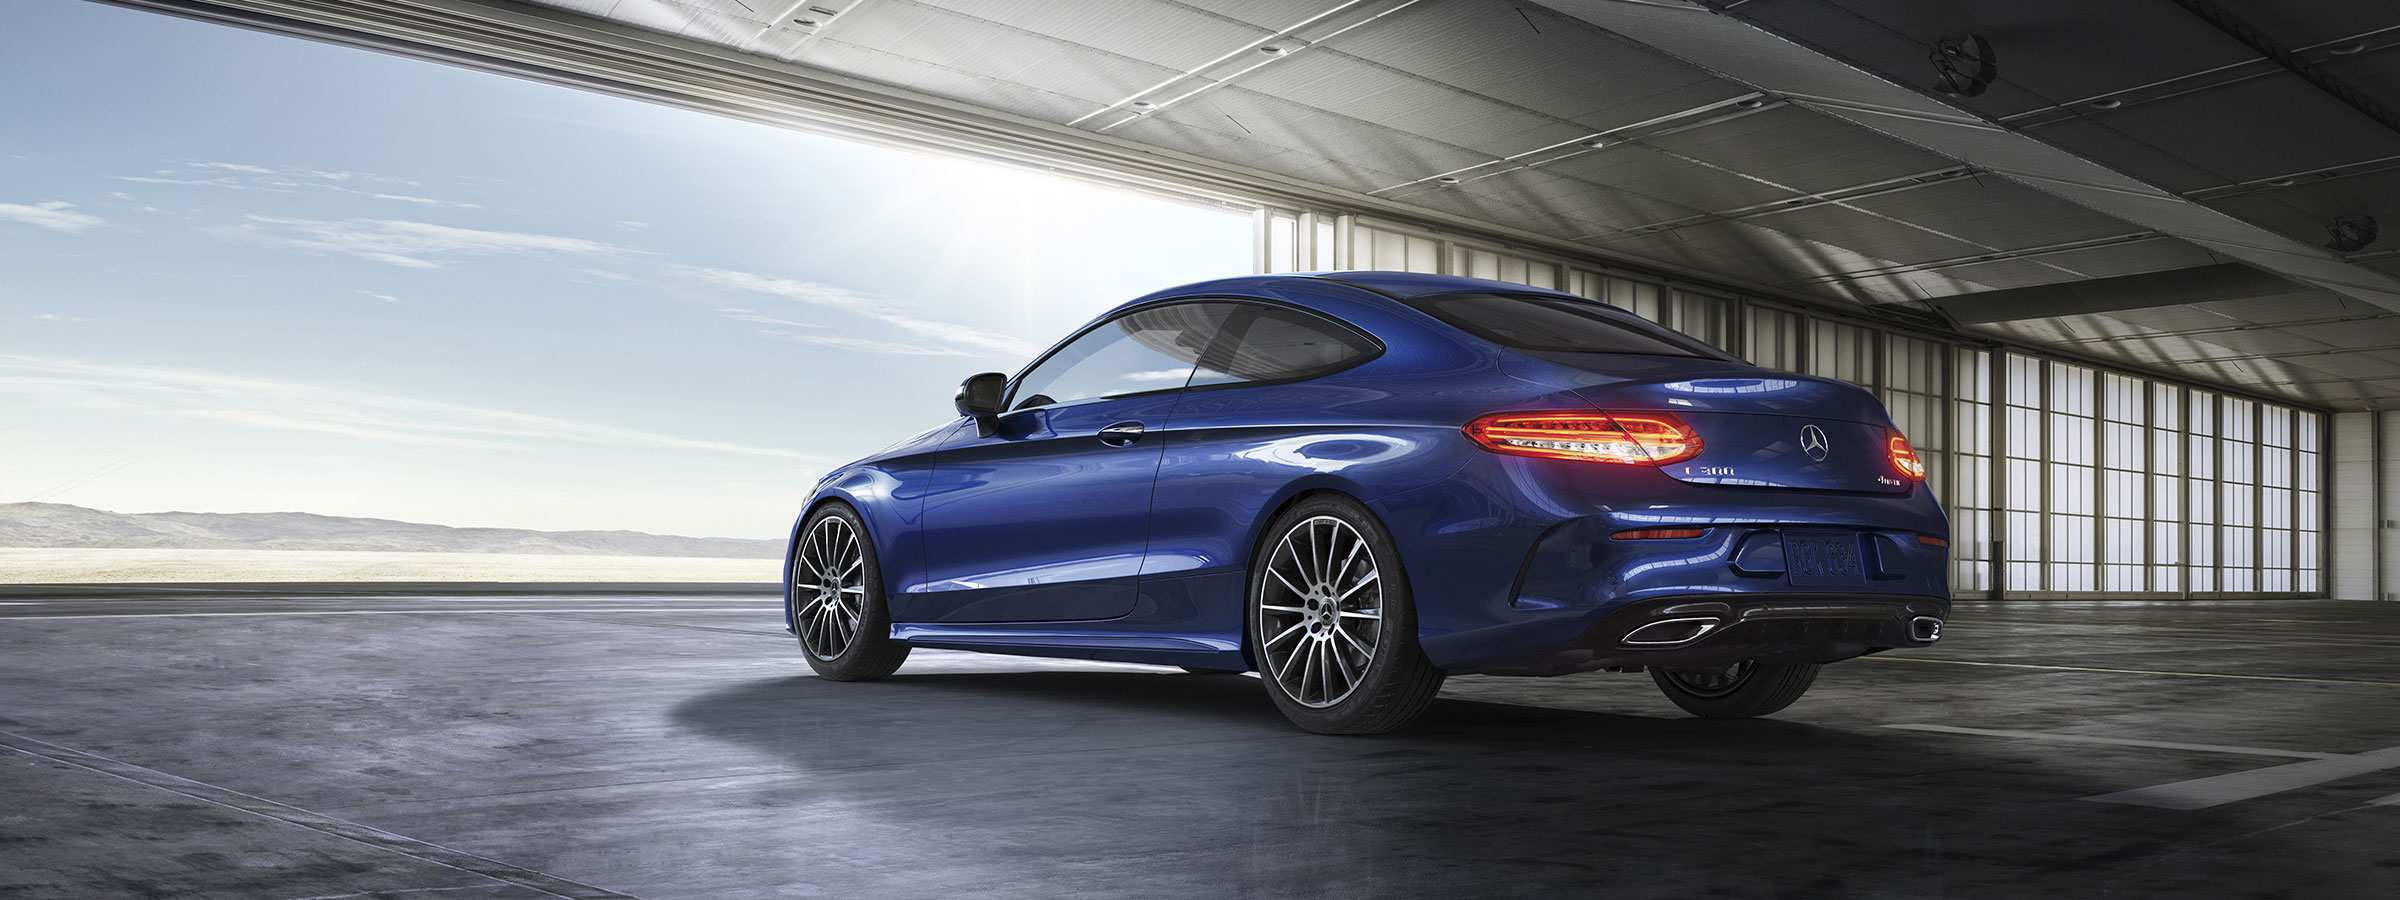 25 Concept of Mercedes C Class Coupe 2019 Release for Mercedes C Class Coupe 2019